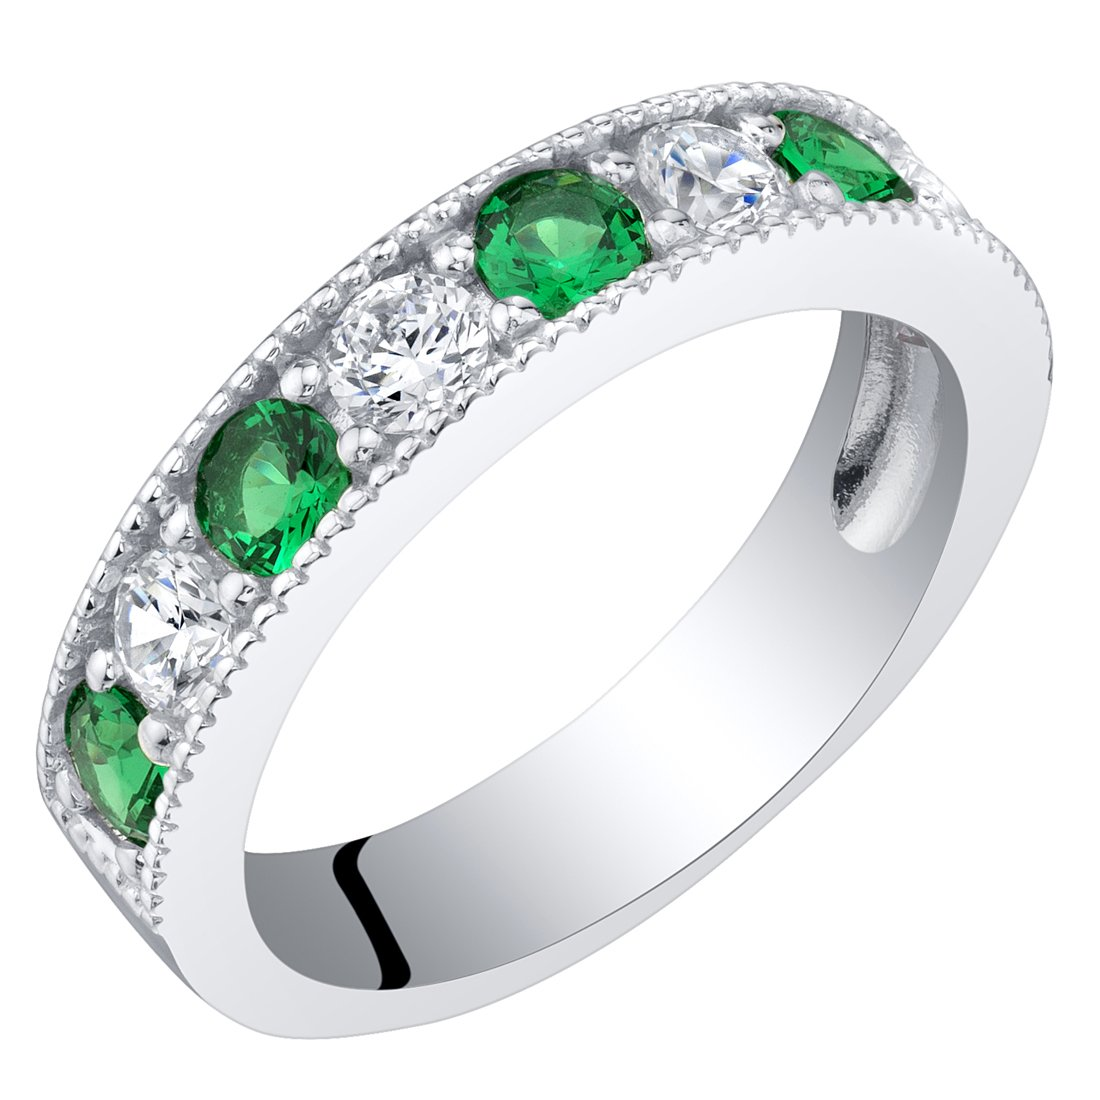 Sterling Silver Simulated Emerald Milgrain Half Eternity Ring Band Size 6